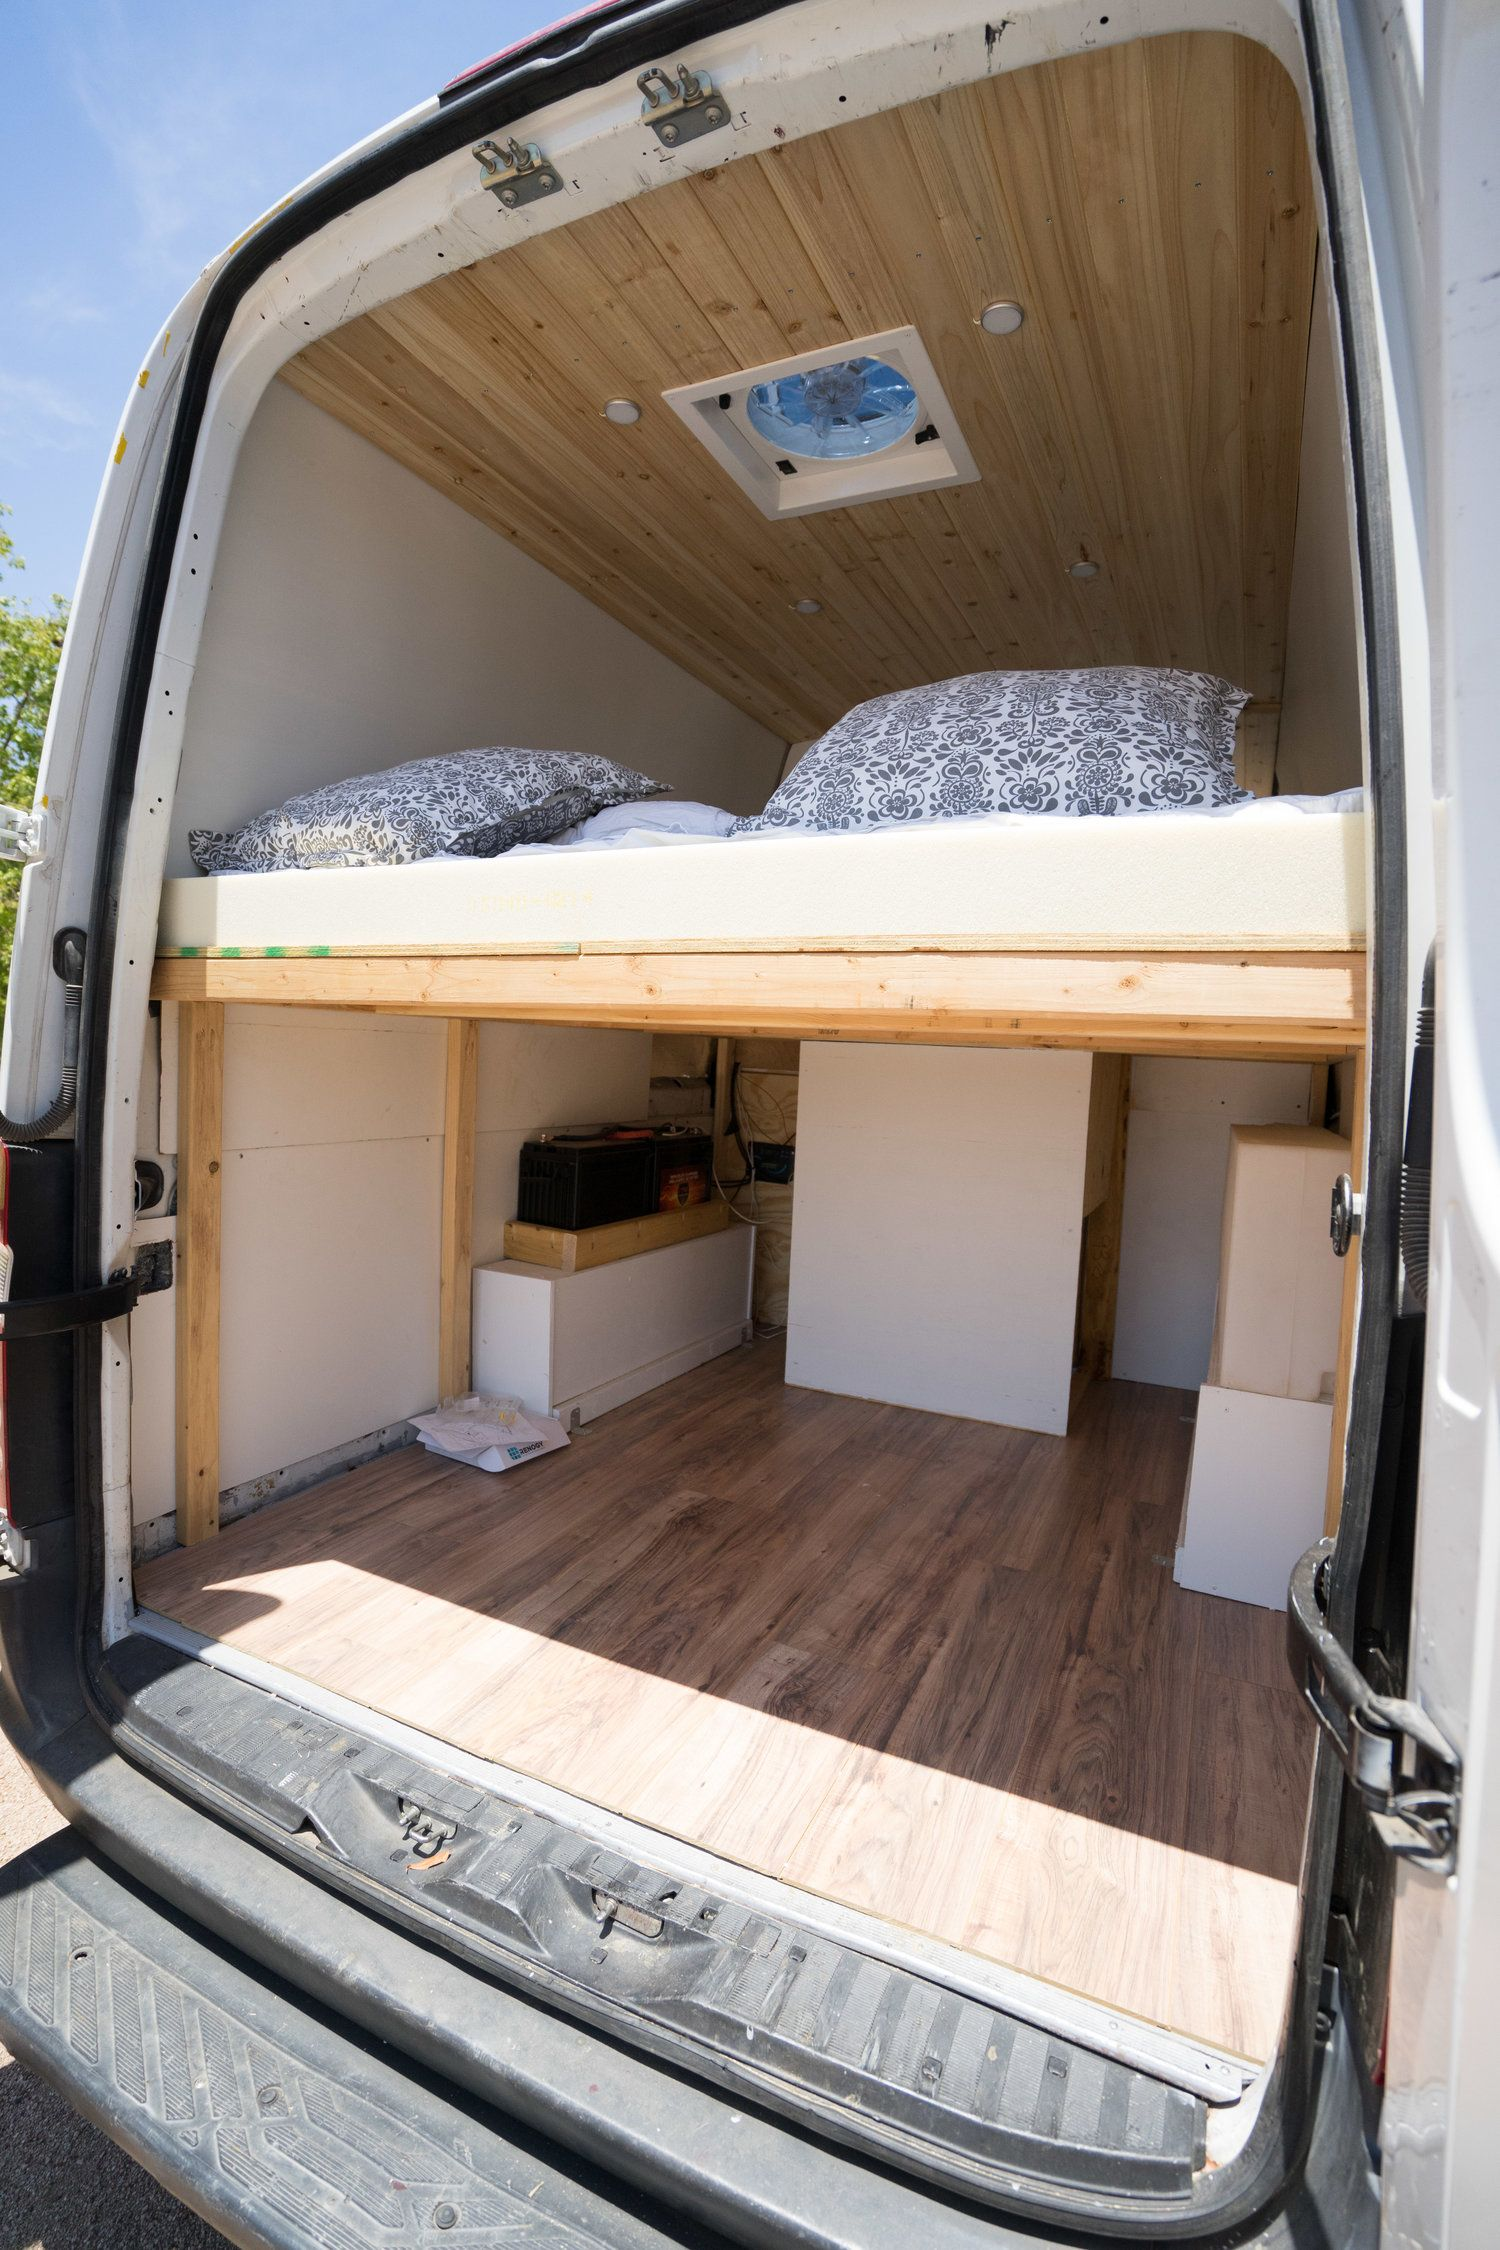 2008 dodge sprinter 170 campers mercedes camper. Black Bedroom Furniture Sets. Home Design Ideas